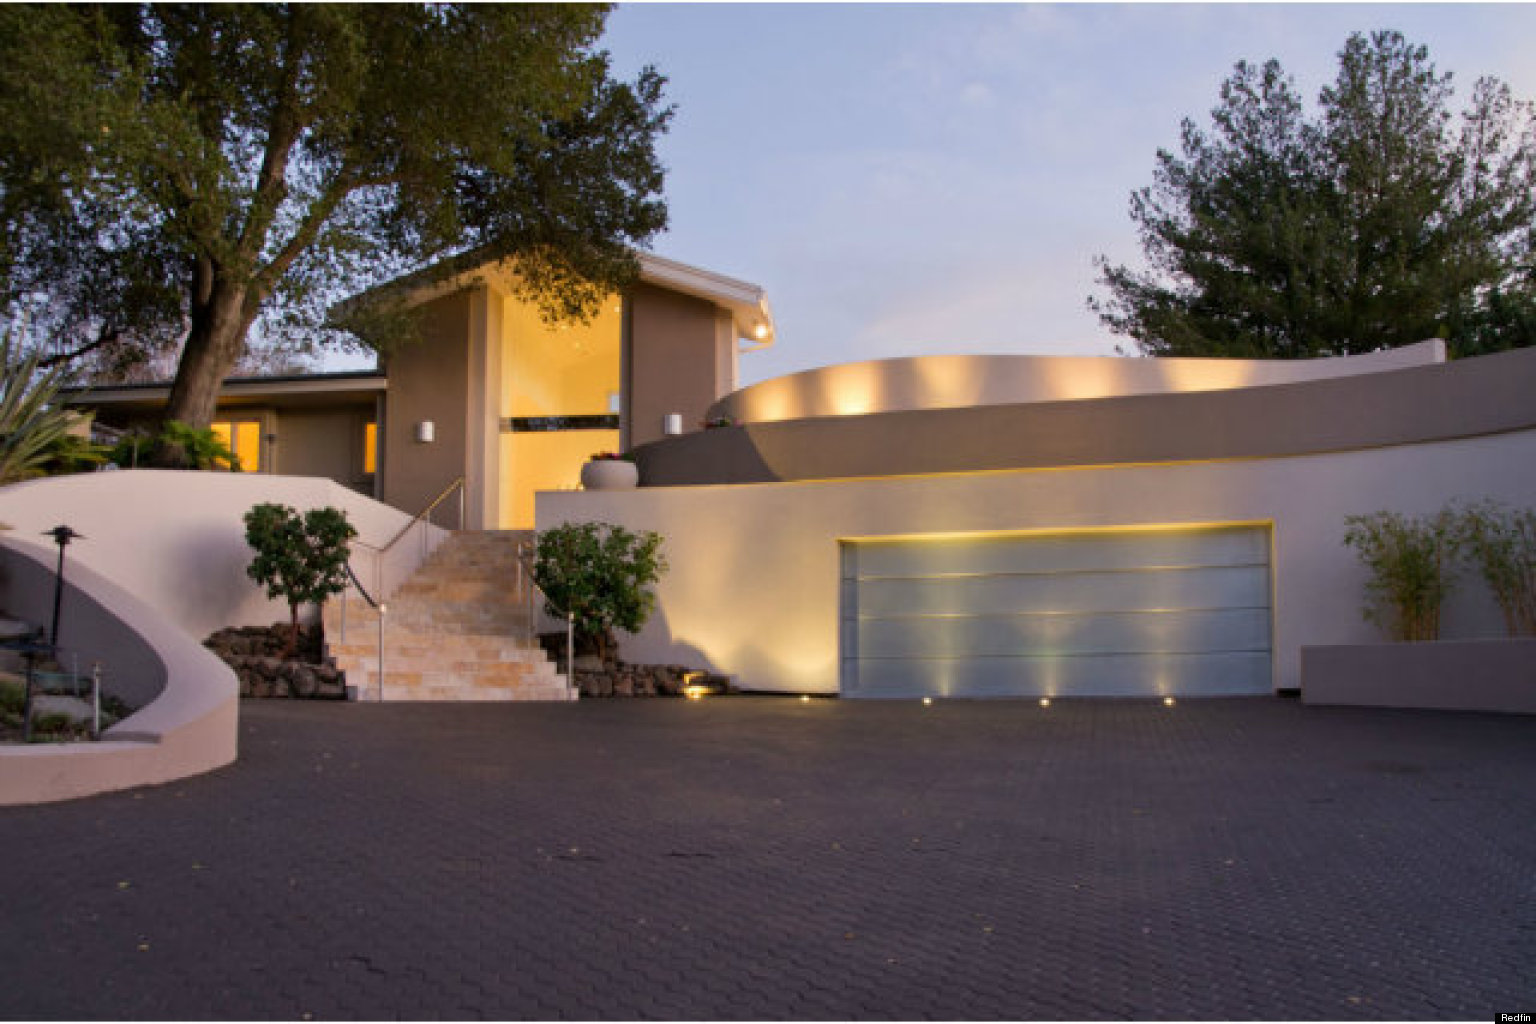 Steve wozniak 39 s former home hits the market photos Modern house company